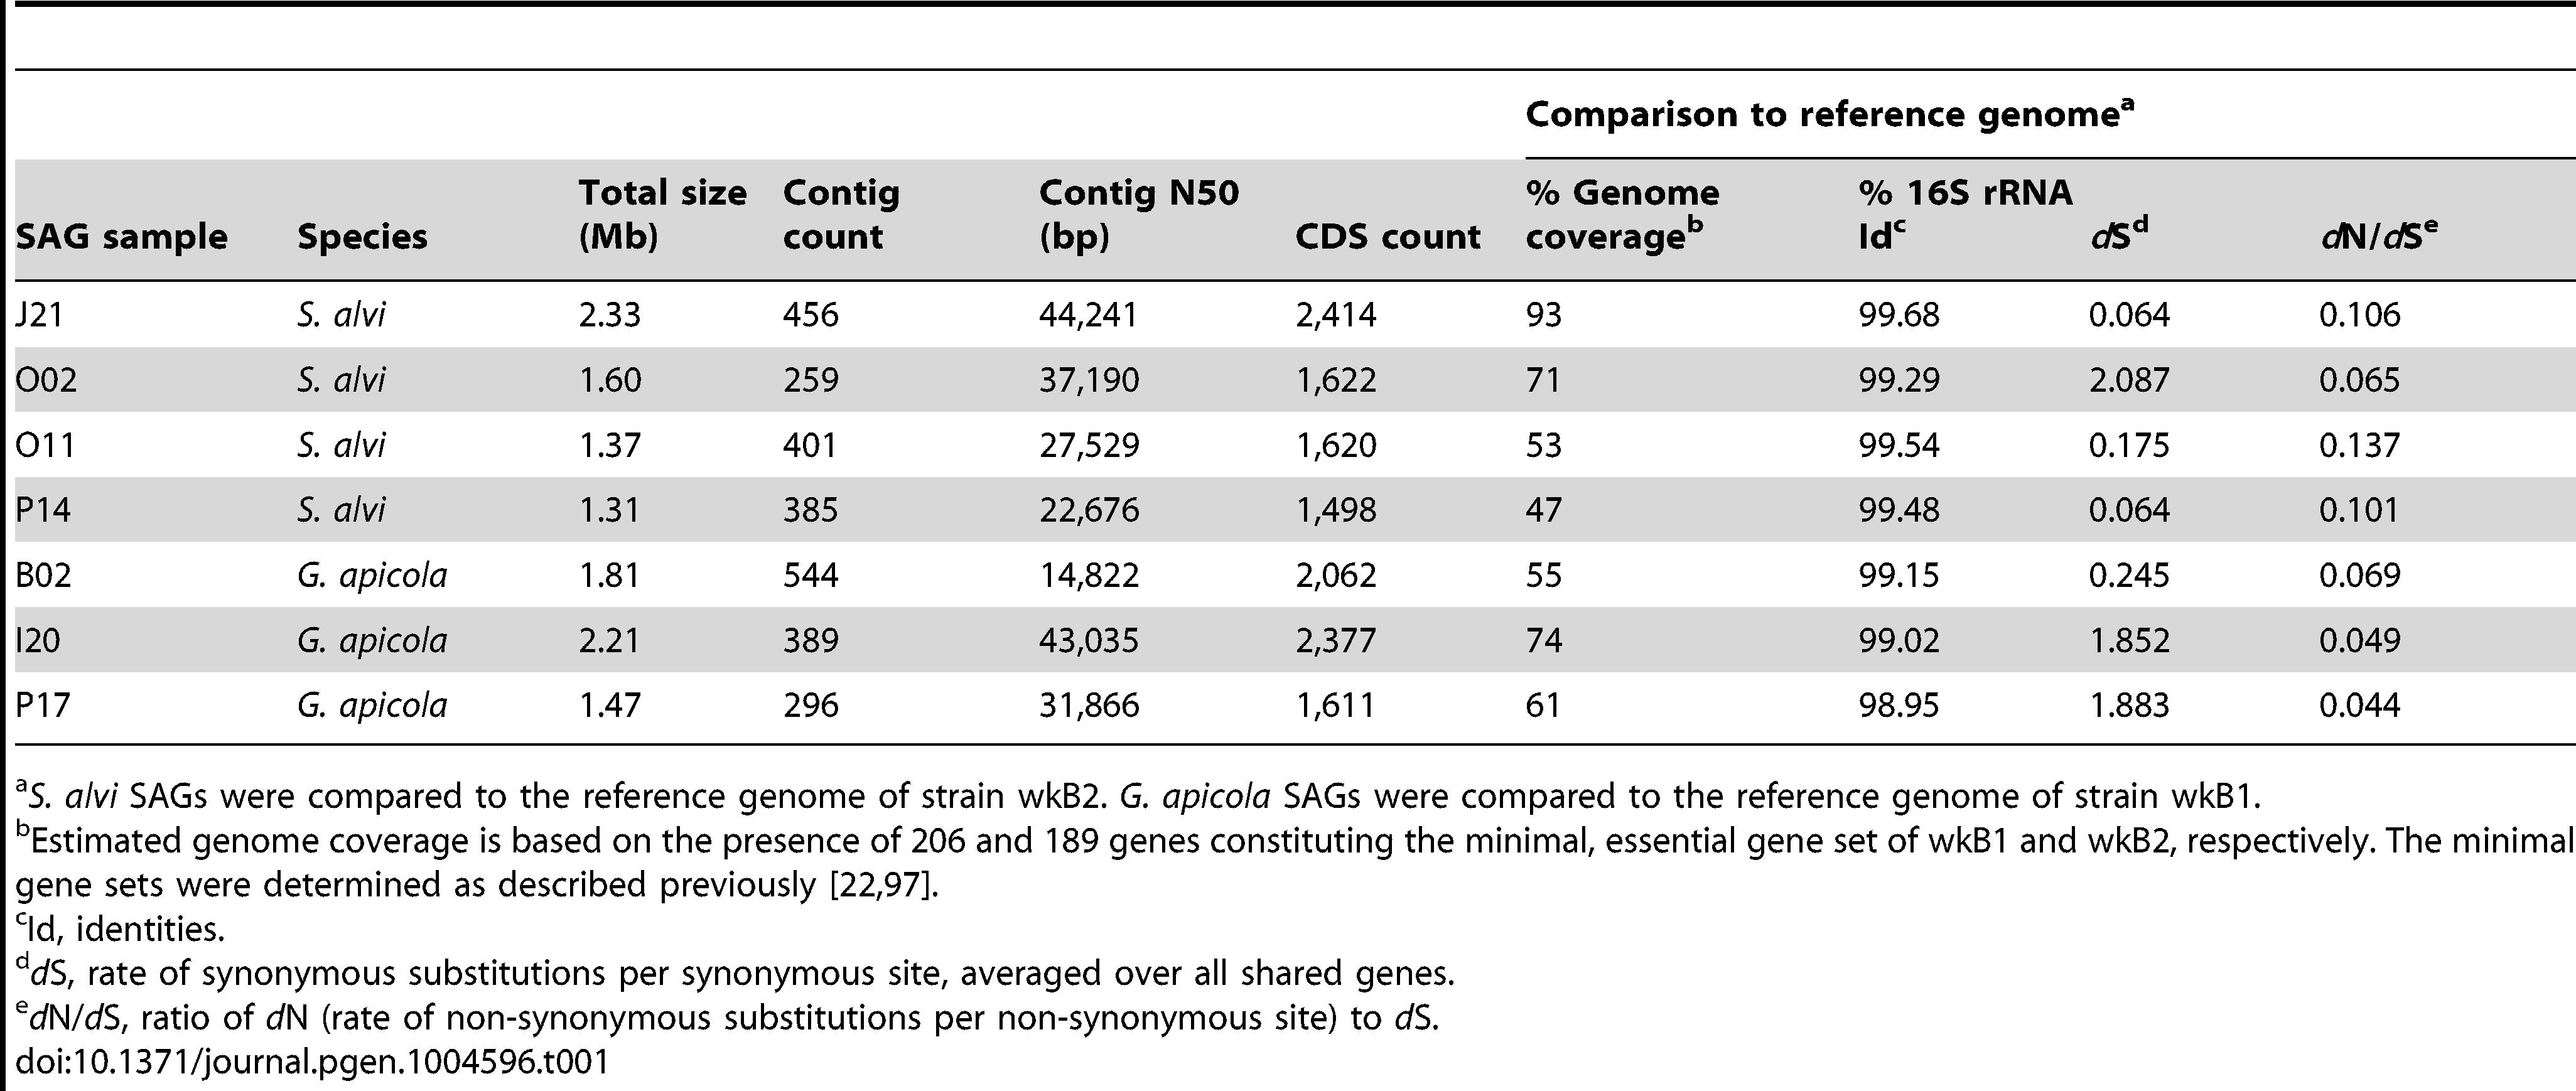 Genome features of SAGs and comparisons to their reference genome.